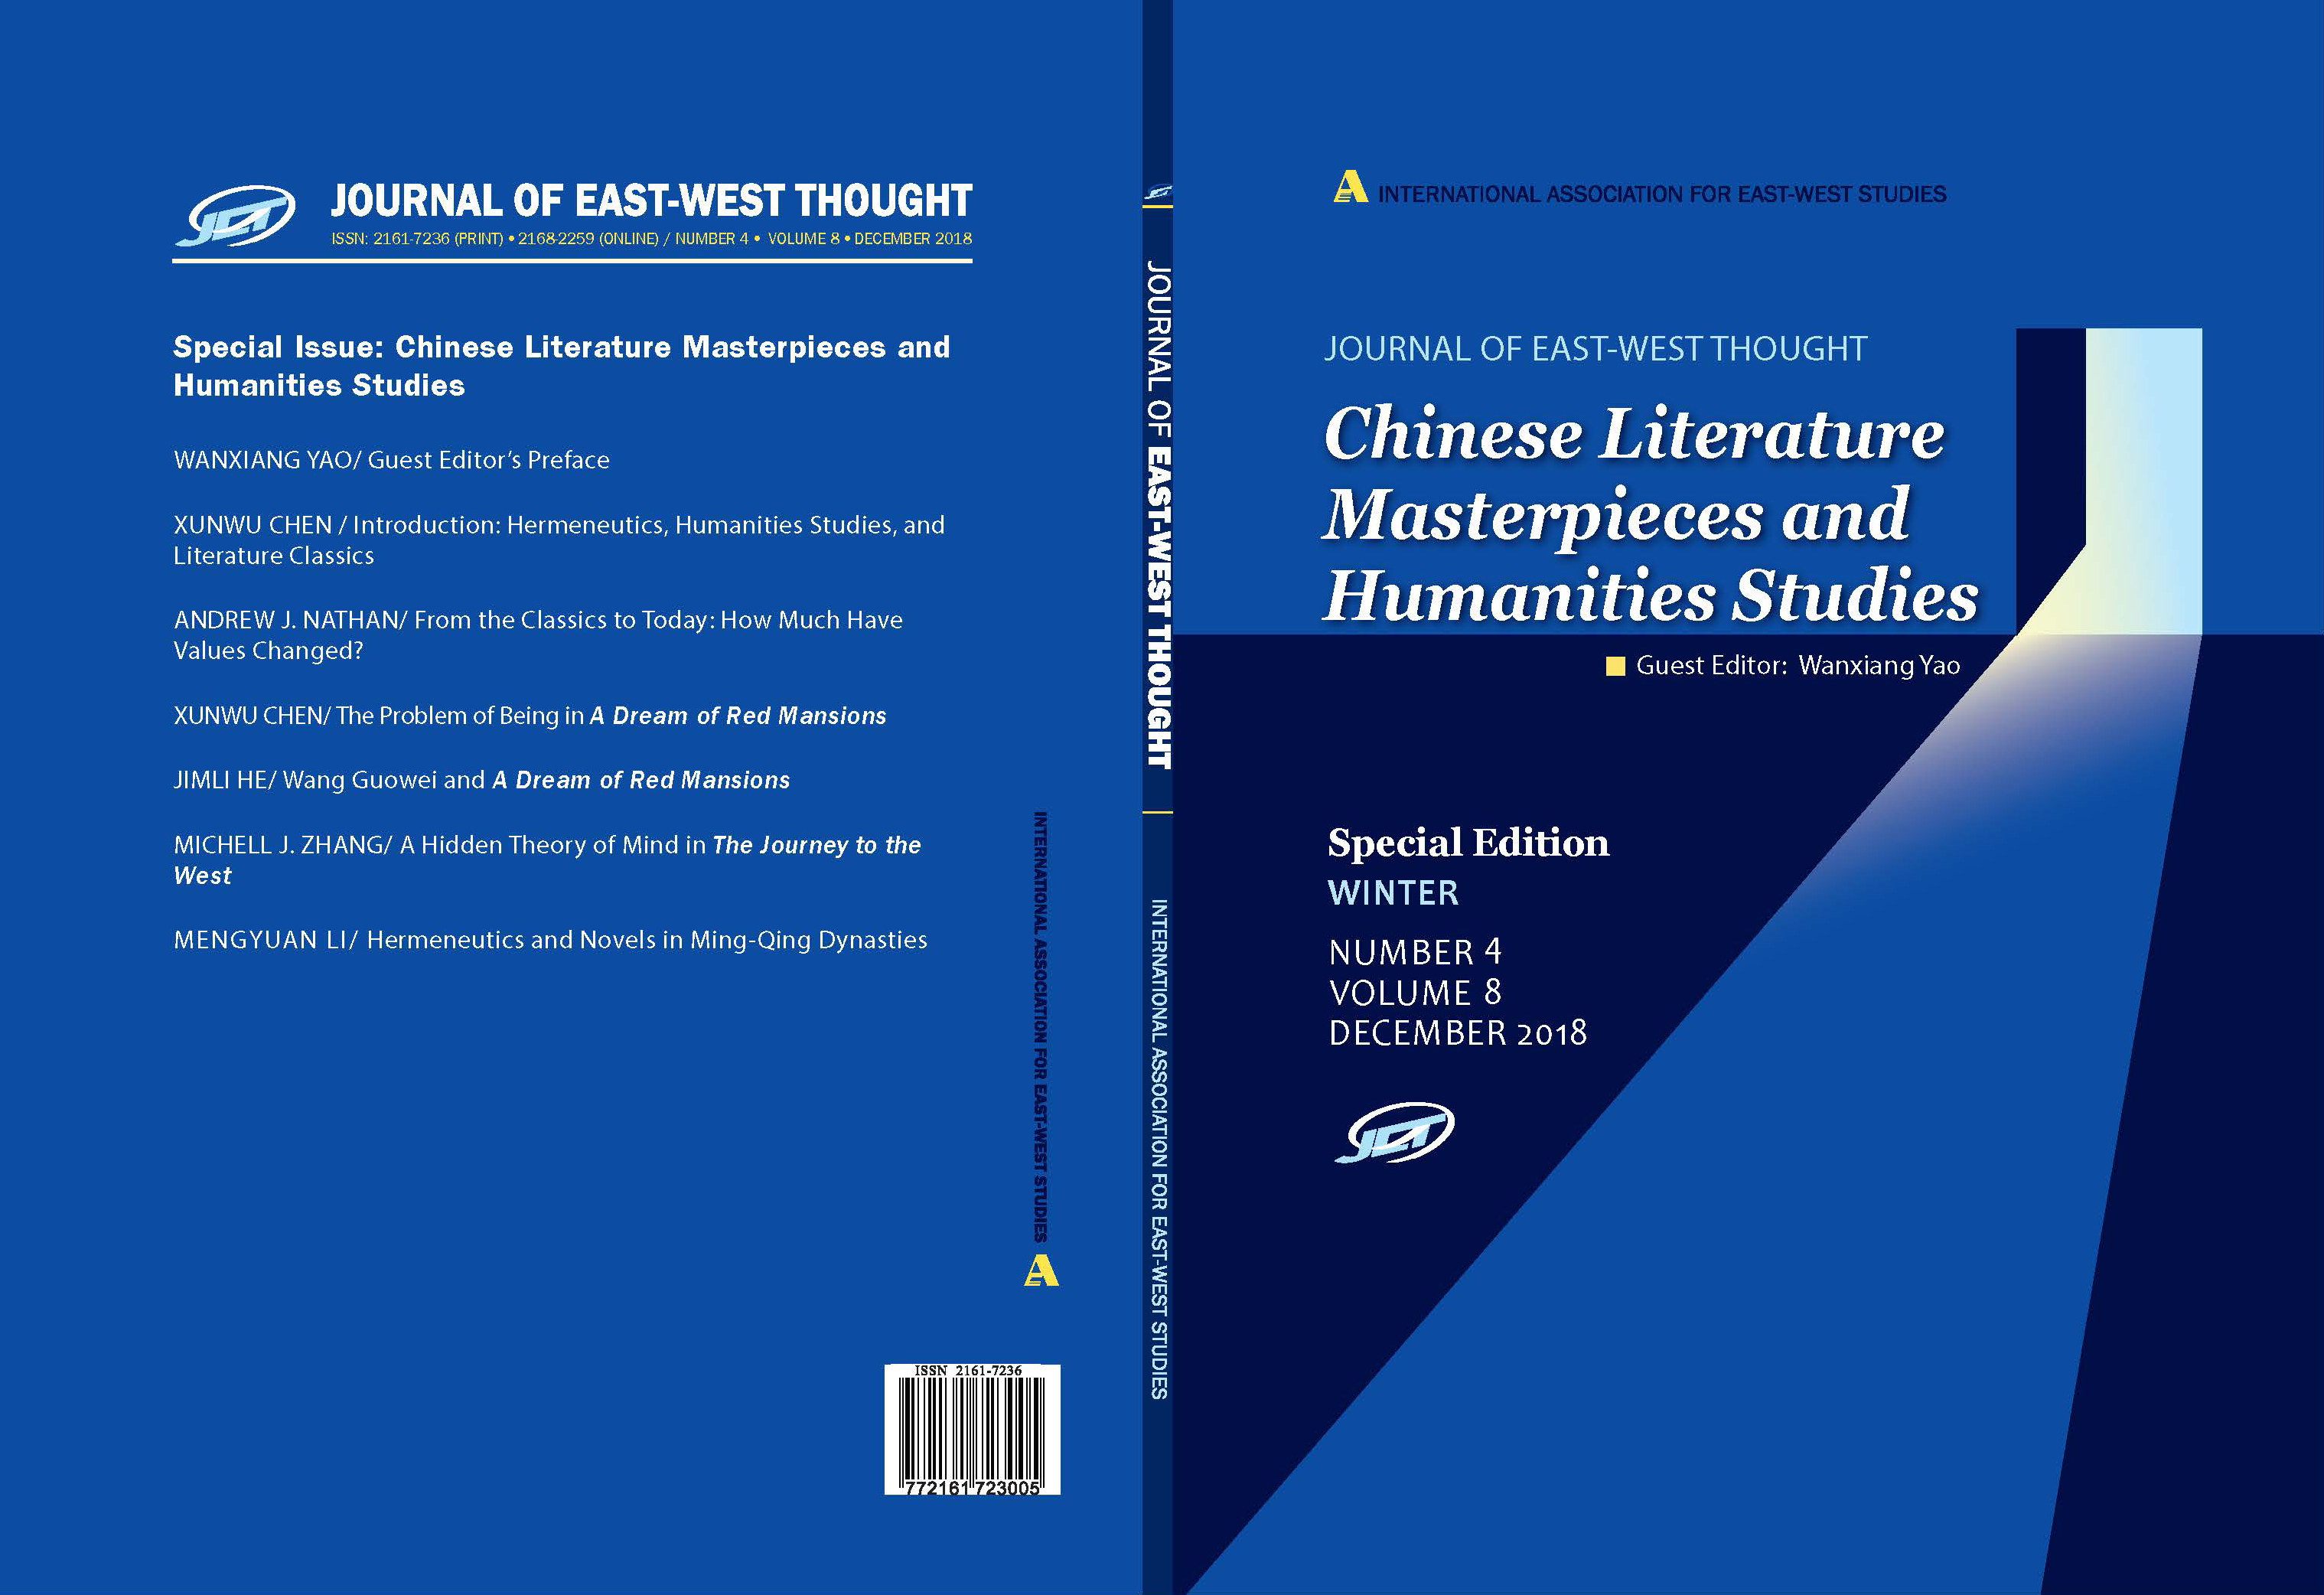 Front and back cover of the Journal of East West Thought Volume 8, Number 4, 2018